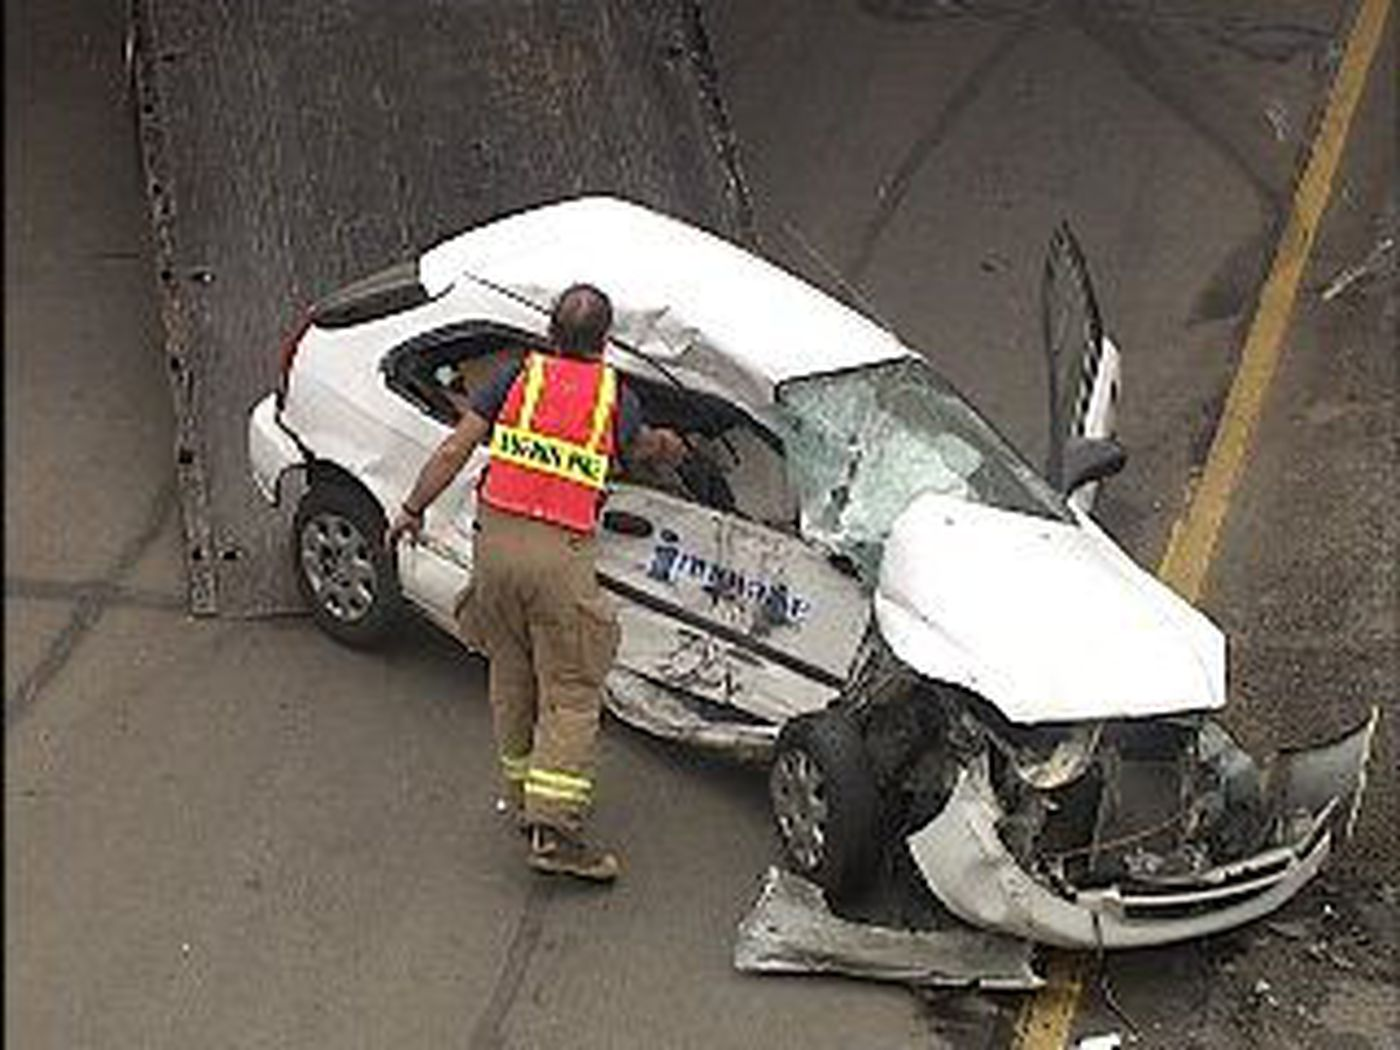 18 Wheeler and Car Involved in Loop Accident in Lufkin